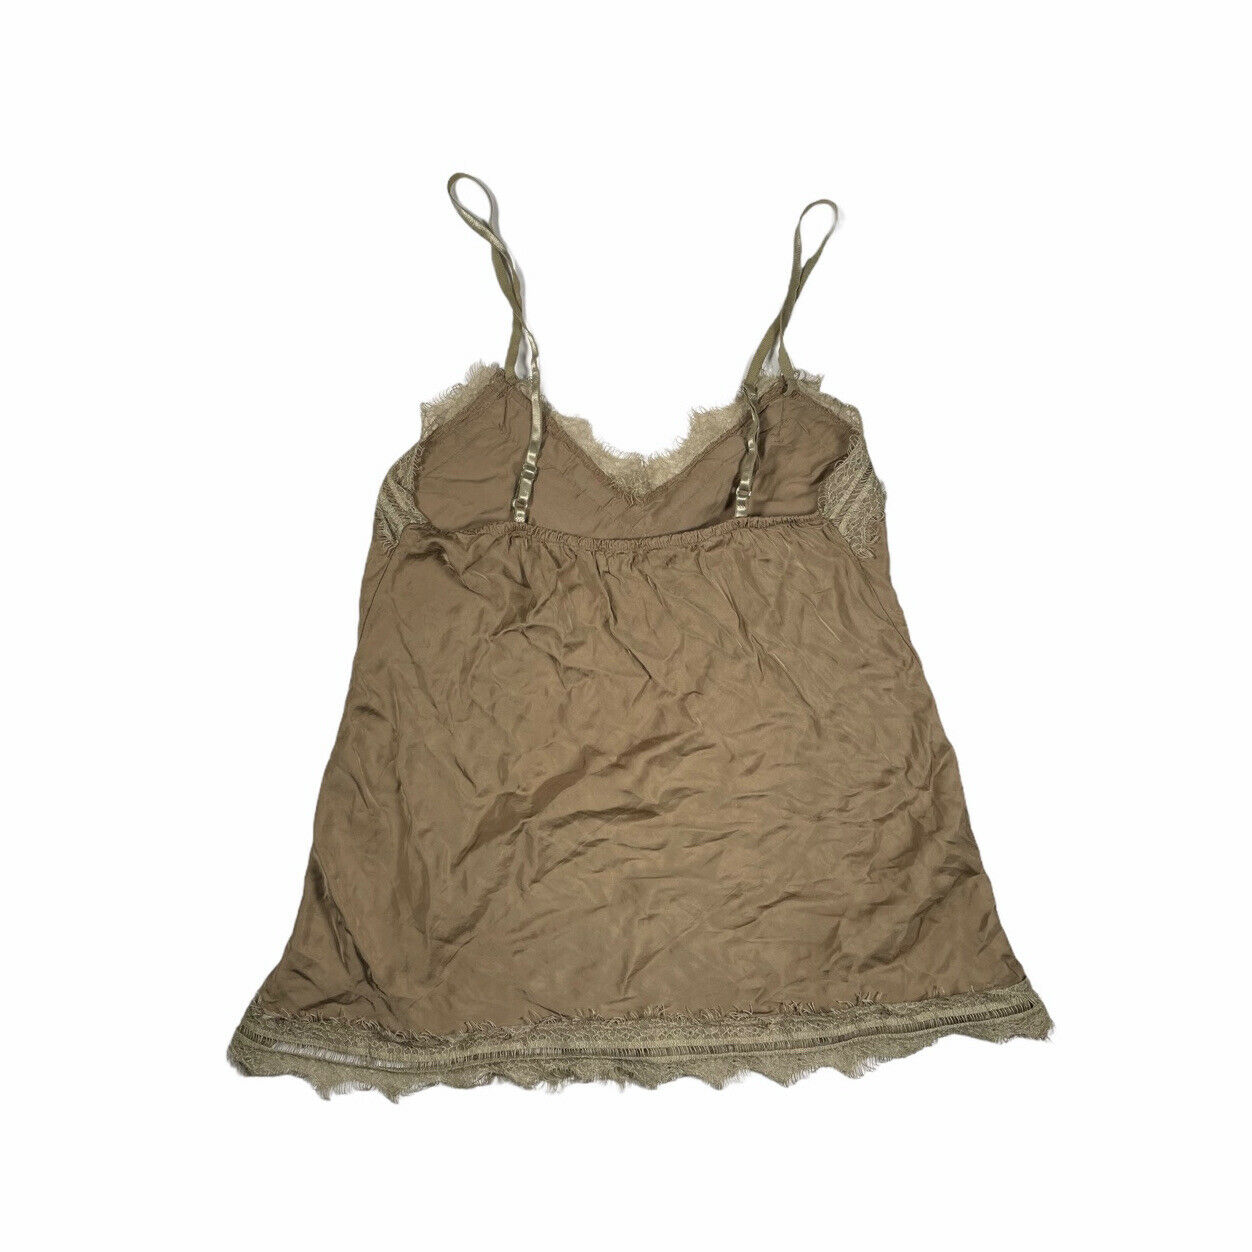 Vintage earthy lace cami fairycore - image 2